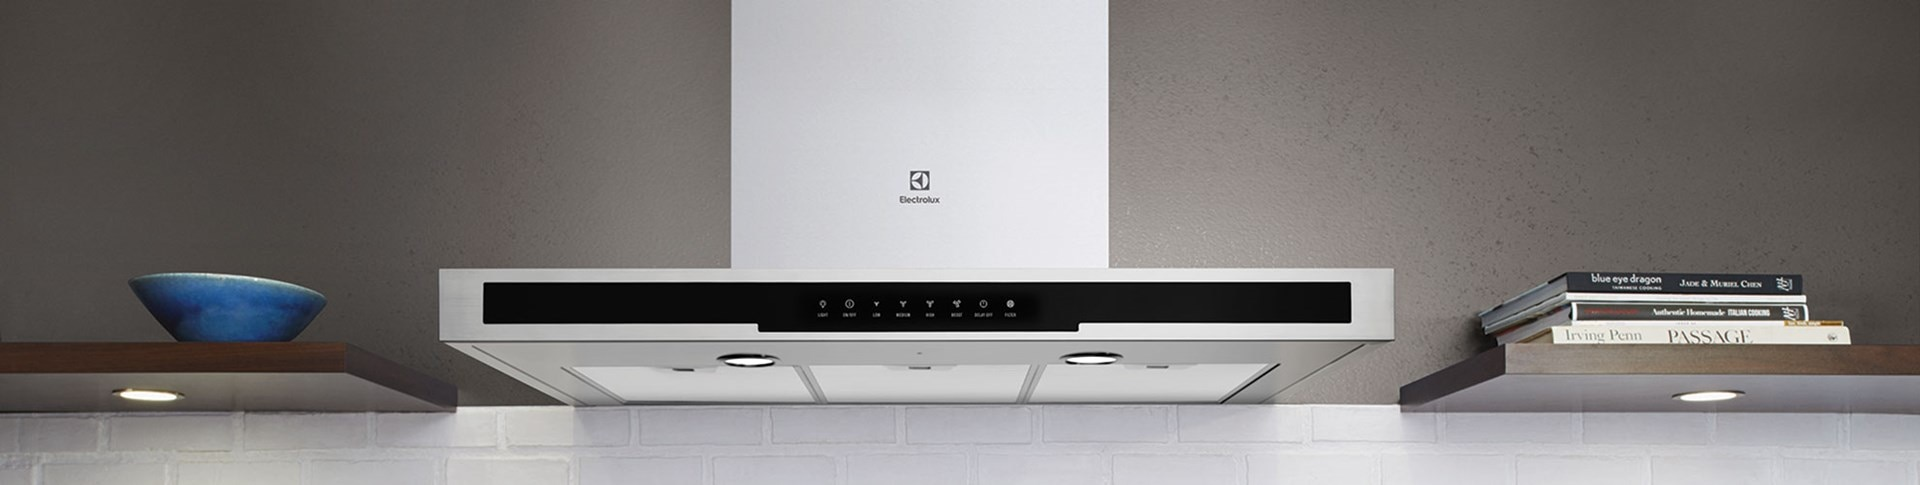 Range Hoods FAQ - 4 Things You Need to Know